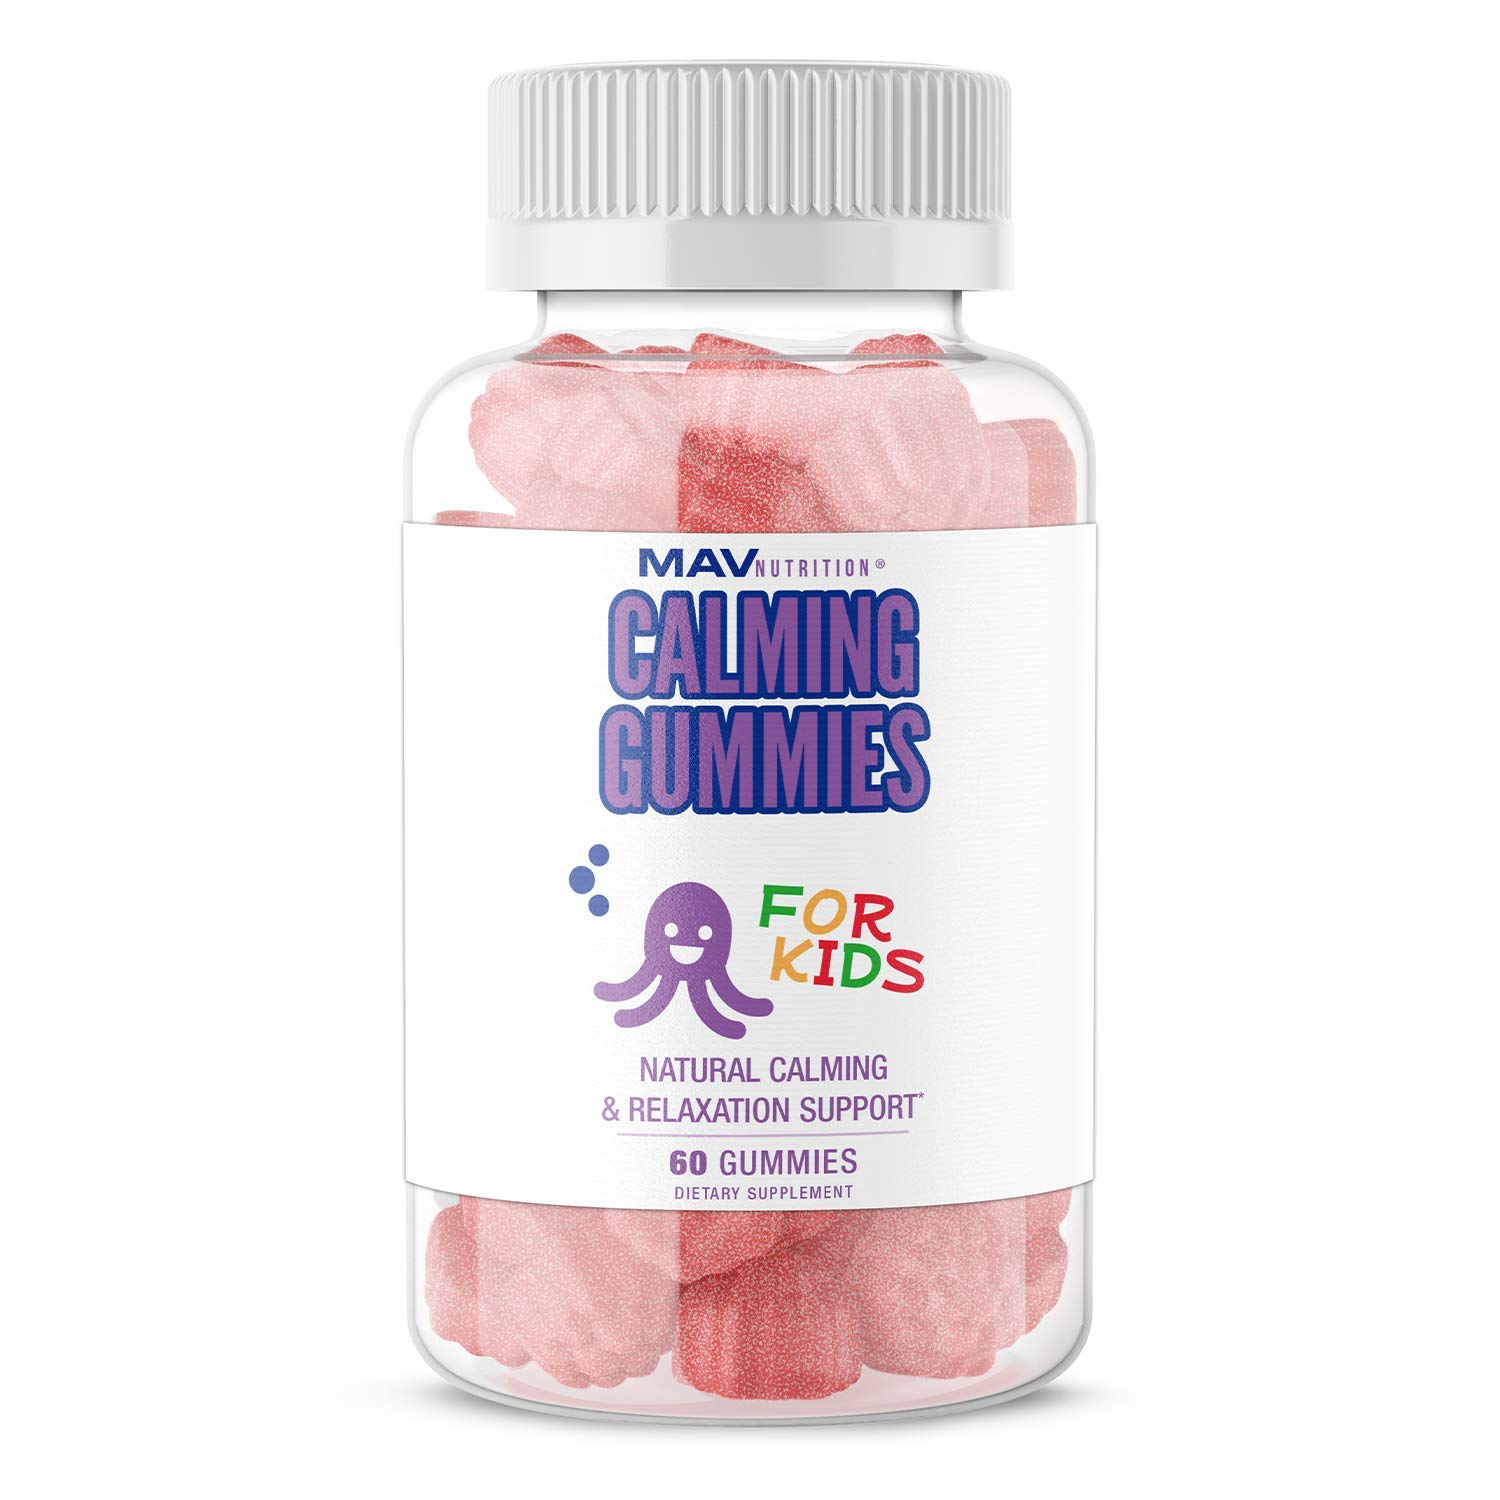 MAV NUTRITION Kids Magnesium Gummies, with a Calming Herbal Blend | for Sleep Support and Anxiety Relief | Promotes a Natural Wake and Sleep Cycle | Non-GMO, 50mg of Magnesium per Serving, 60 Gummies